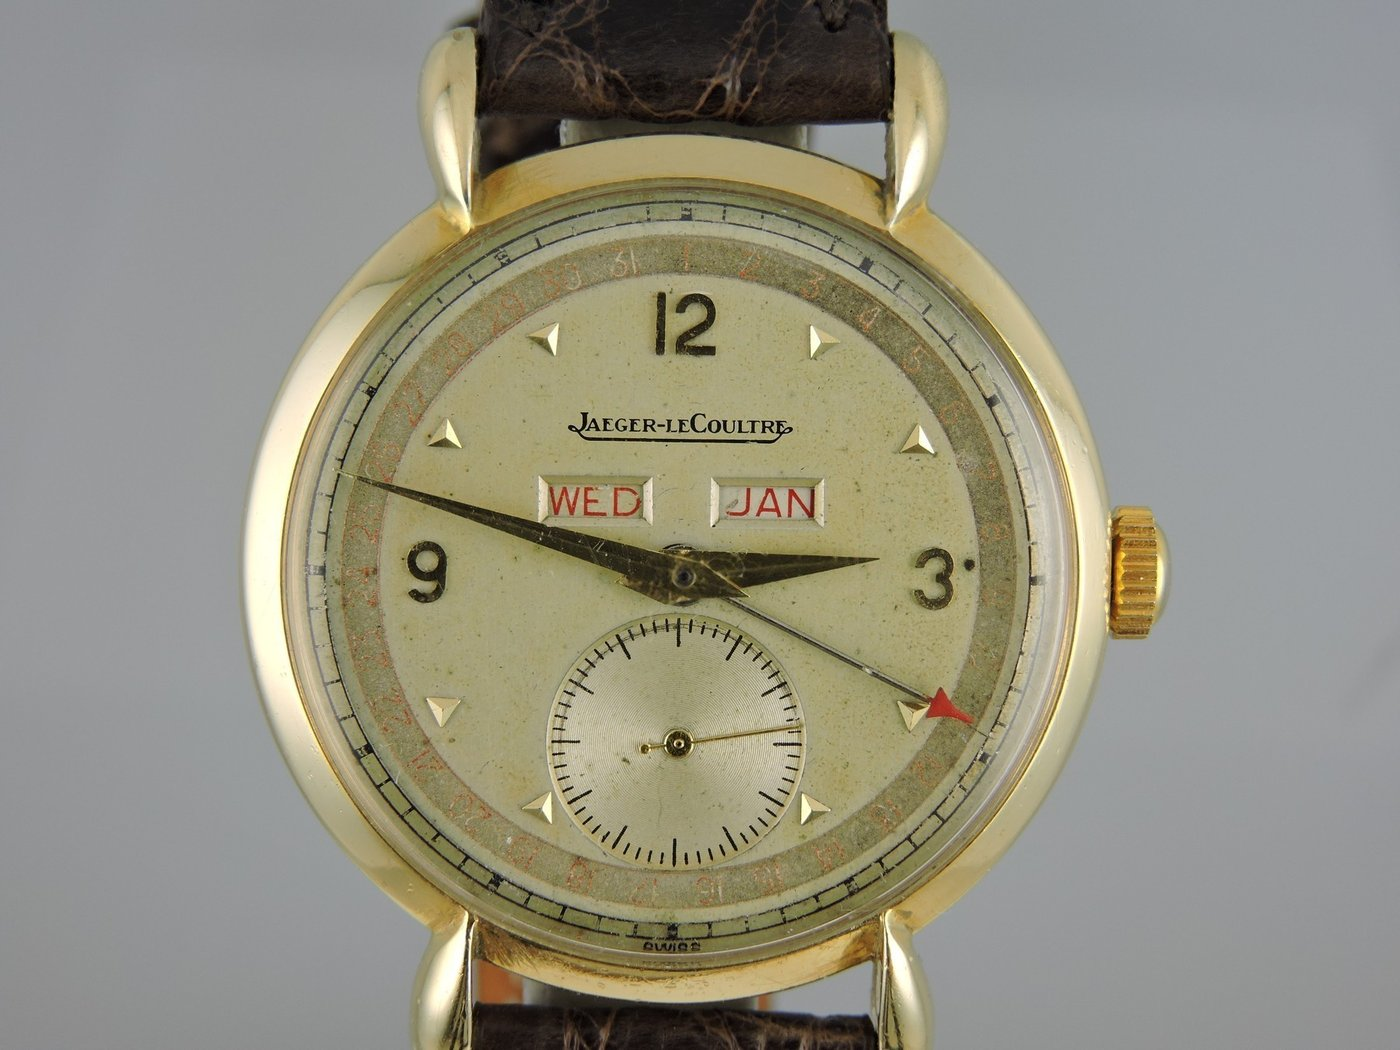 jaeger lecoultre serial number date